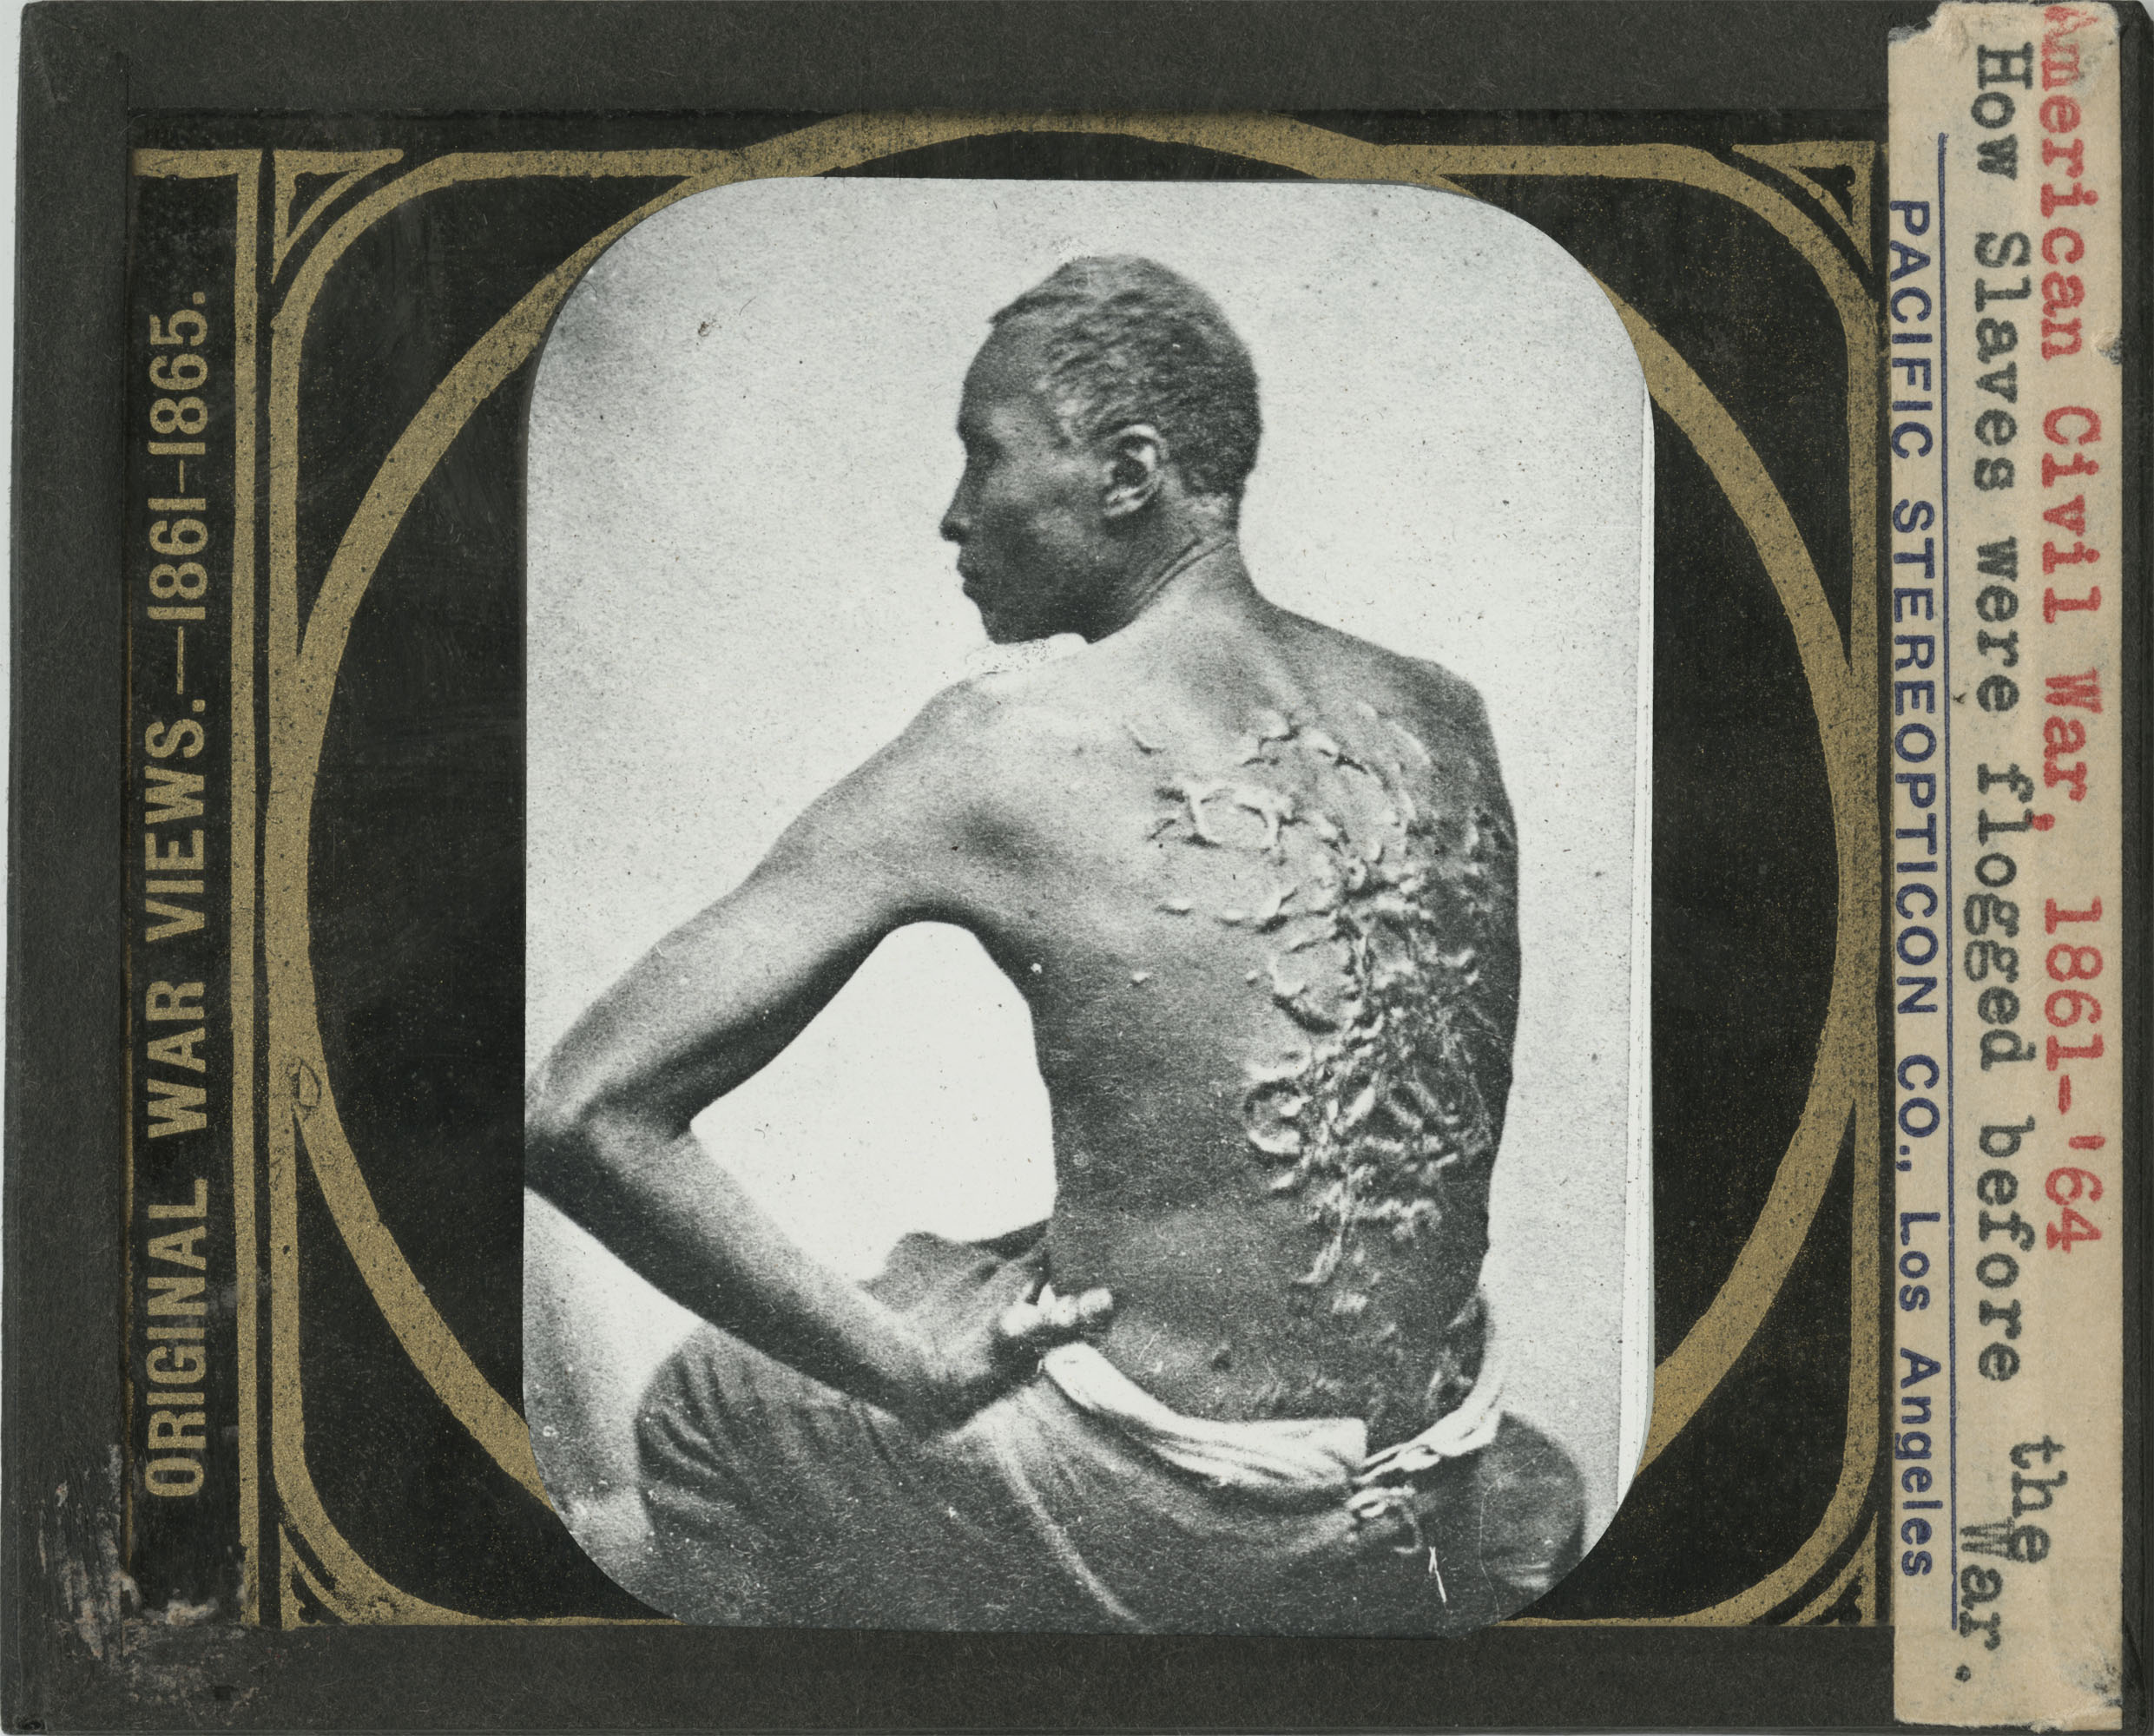 Original War Views 1861-1865: How Slaves Were Flogged Before the War